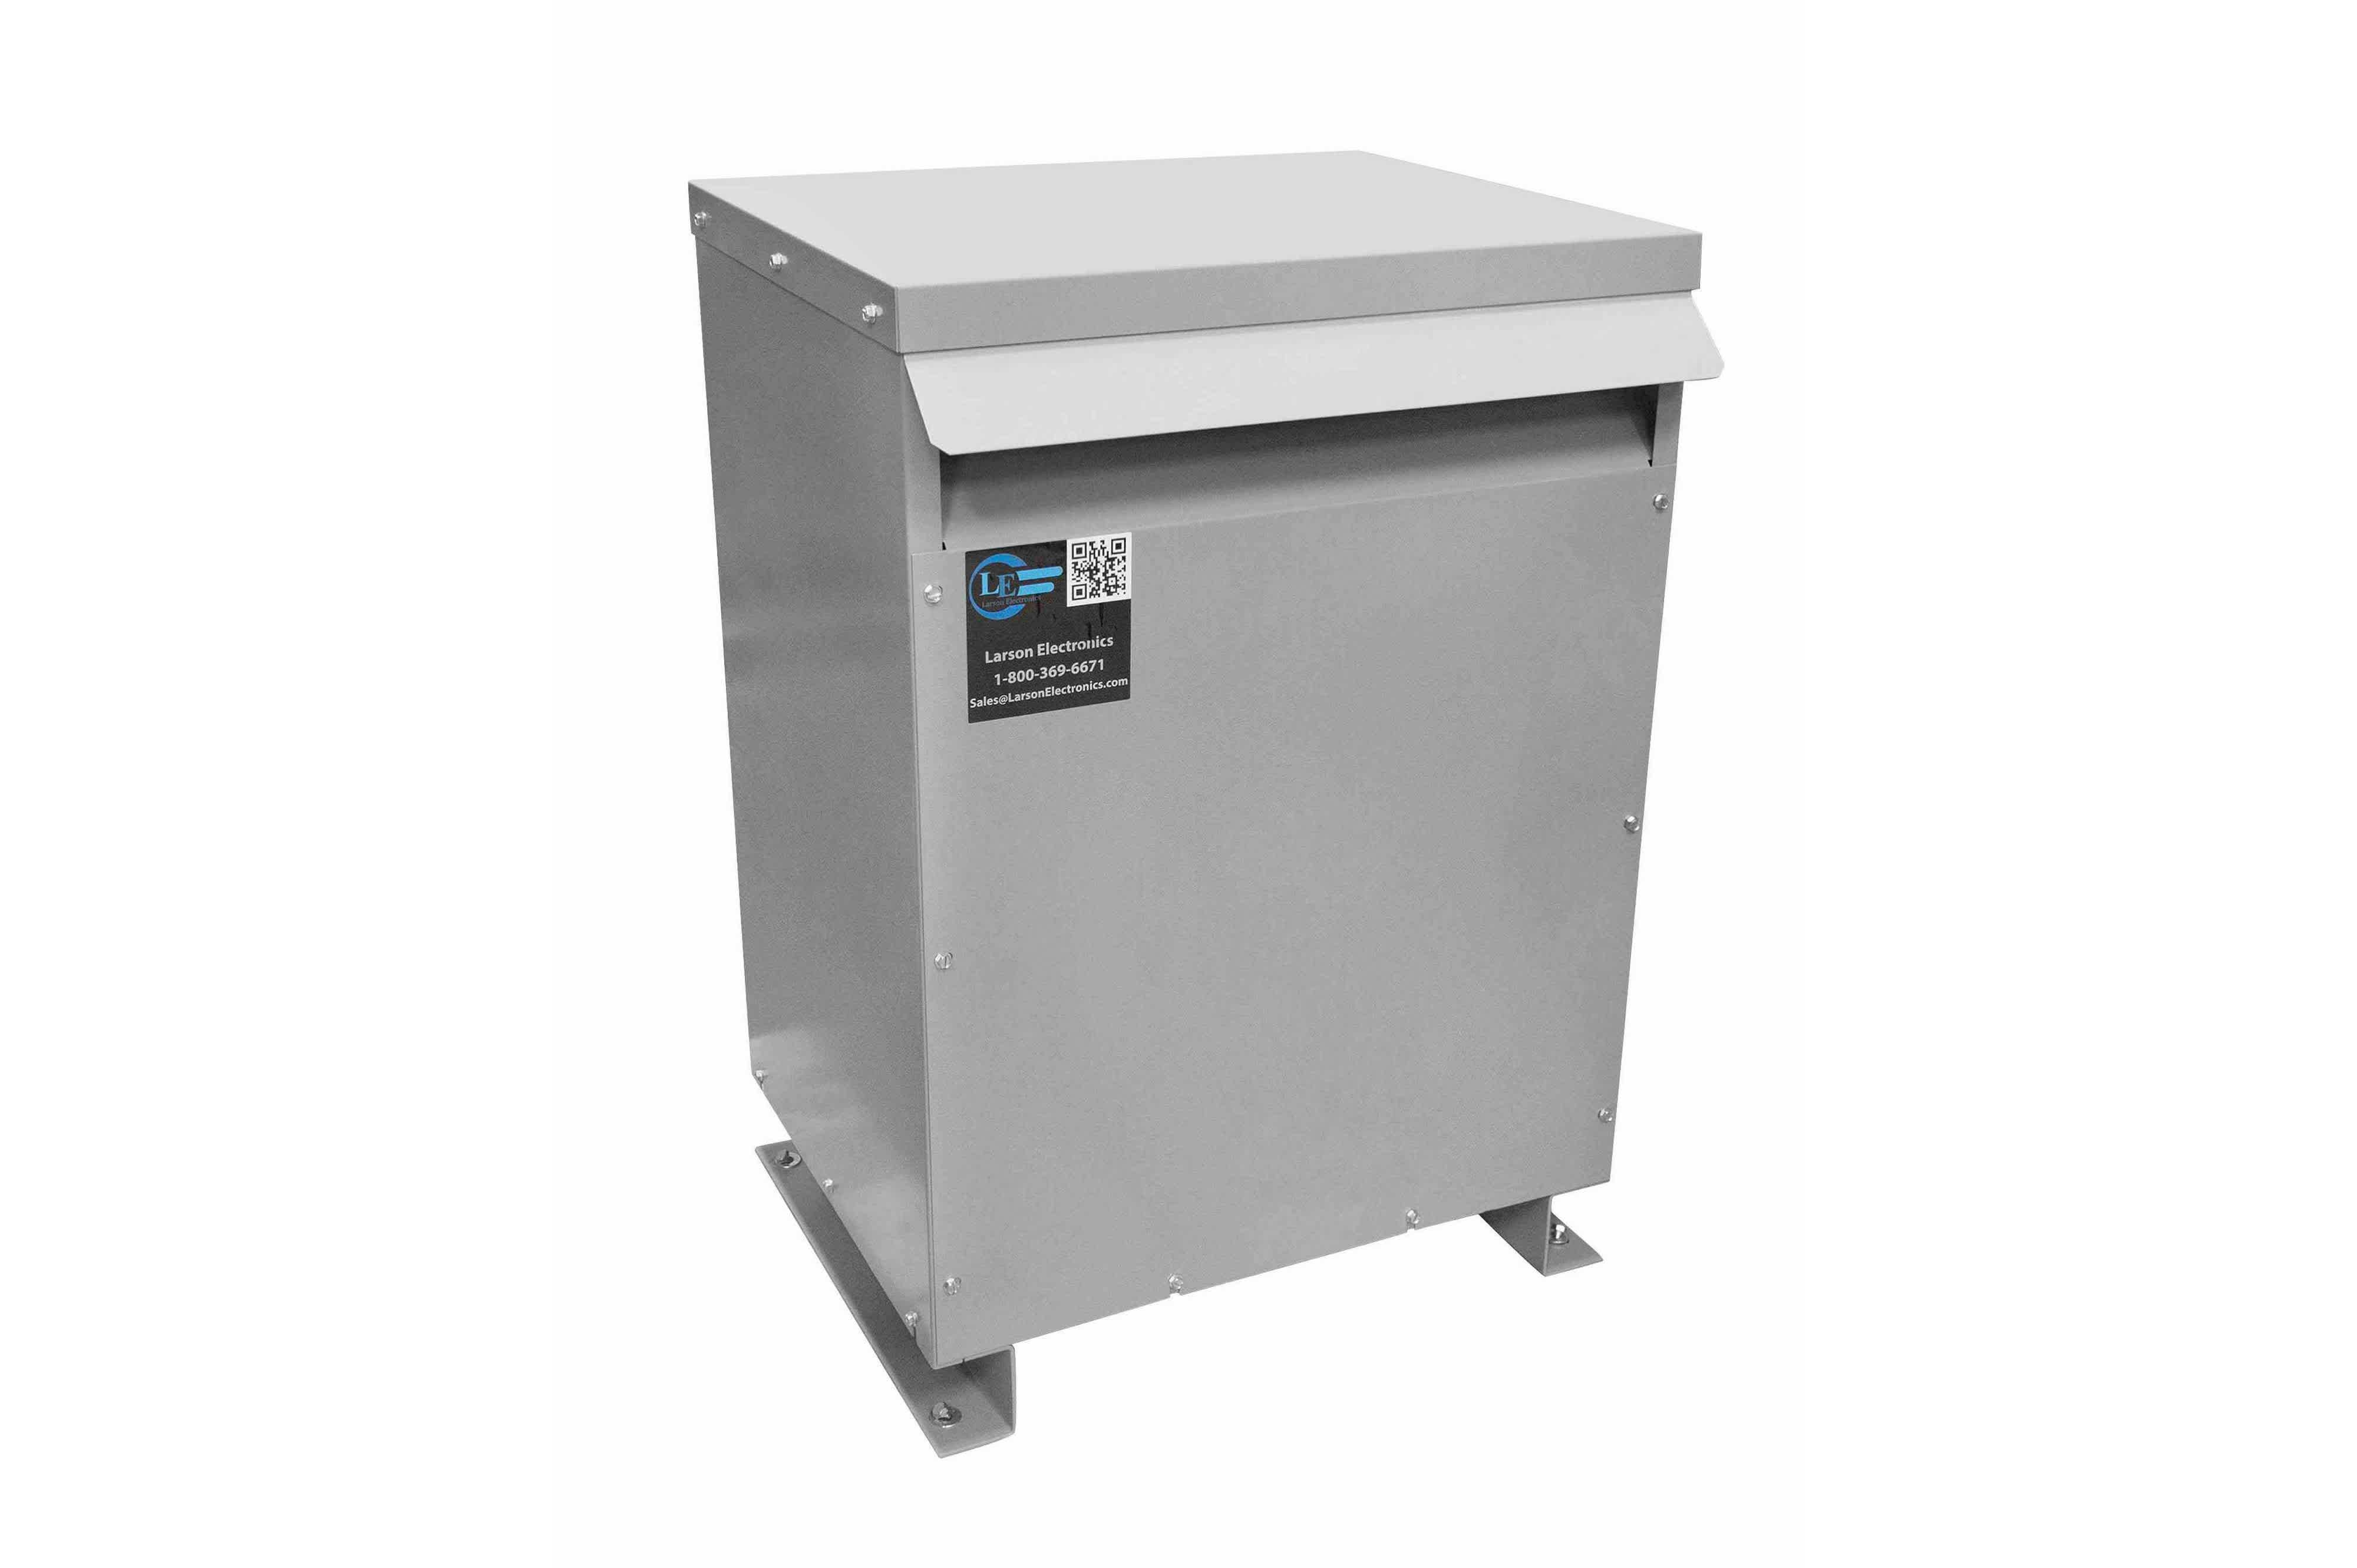 175 kVA 3PH Isolation Transformer, 208V Wye Primary, 600V Delta Secondary, N3R, Ventilated, 60 Hz